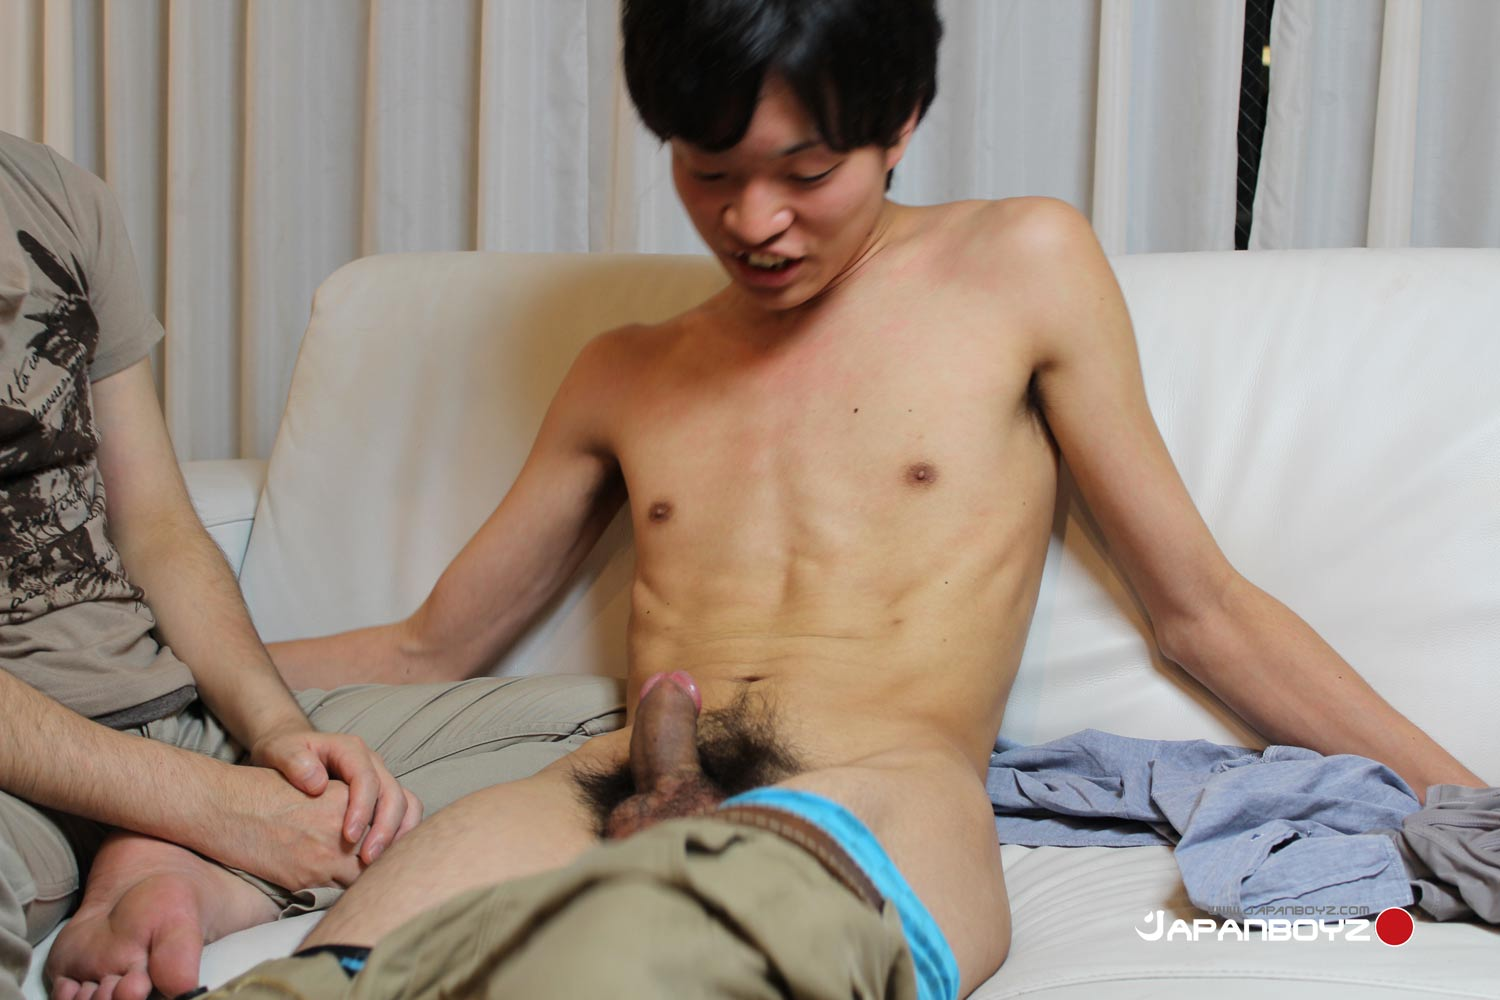 JapanBoyz Nobu and Hira Japanese Boys Sucking Big Asian Cocks Amateur Gay Porn 23 Japanese Boys Trading Blow Jobs With Their Big Asian Cocks